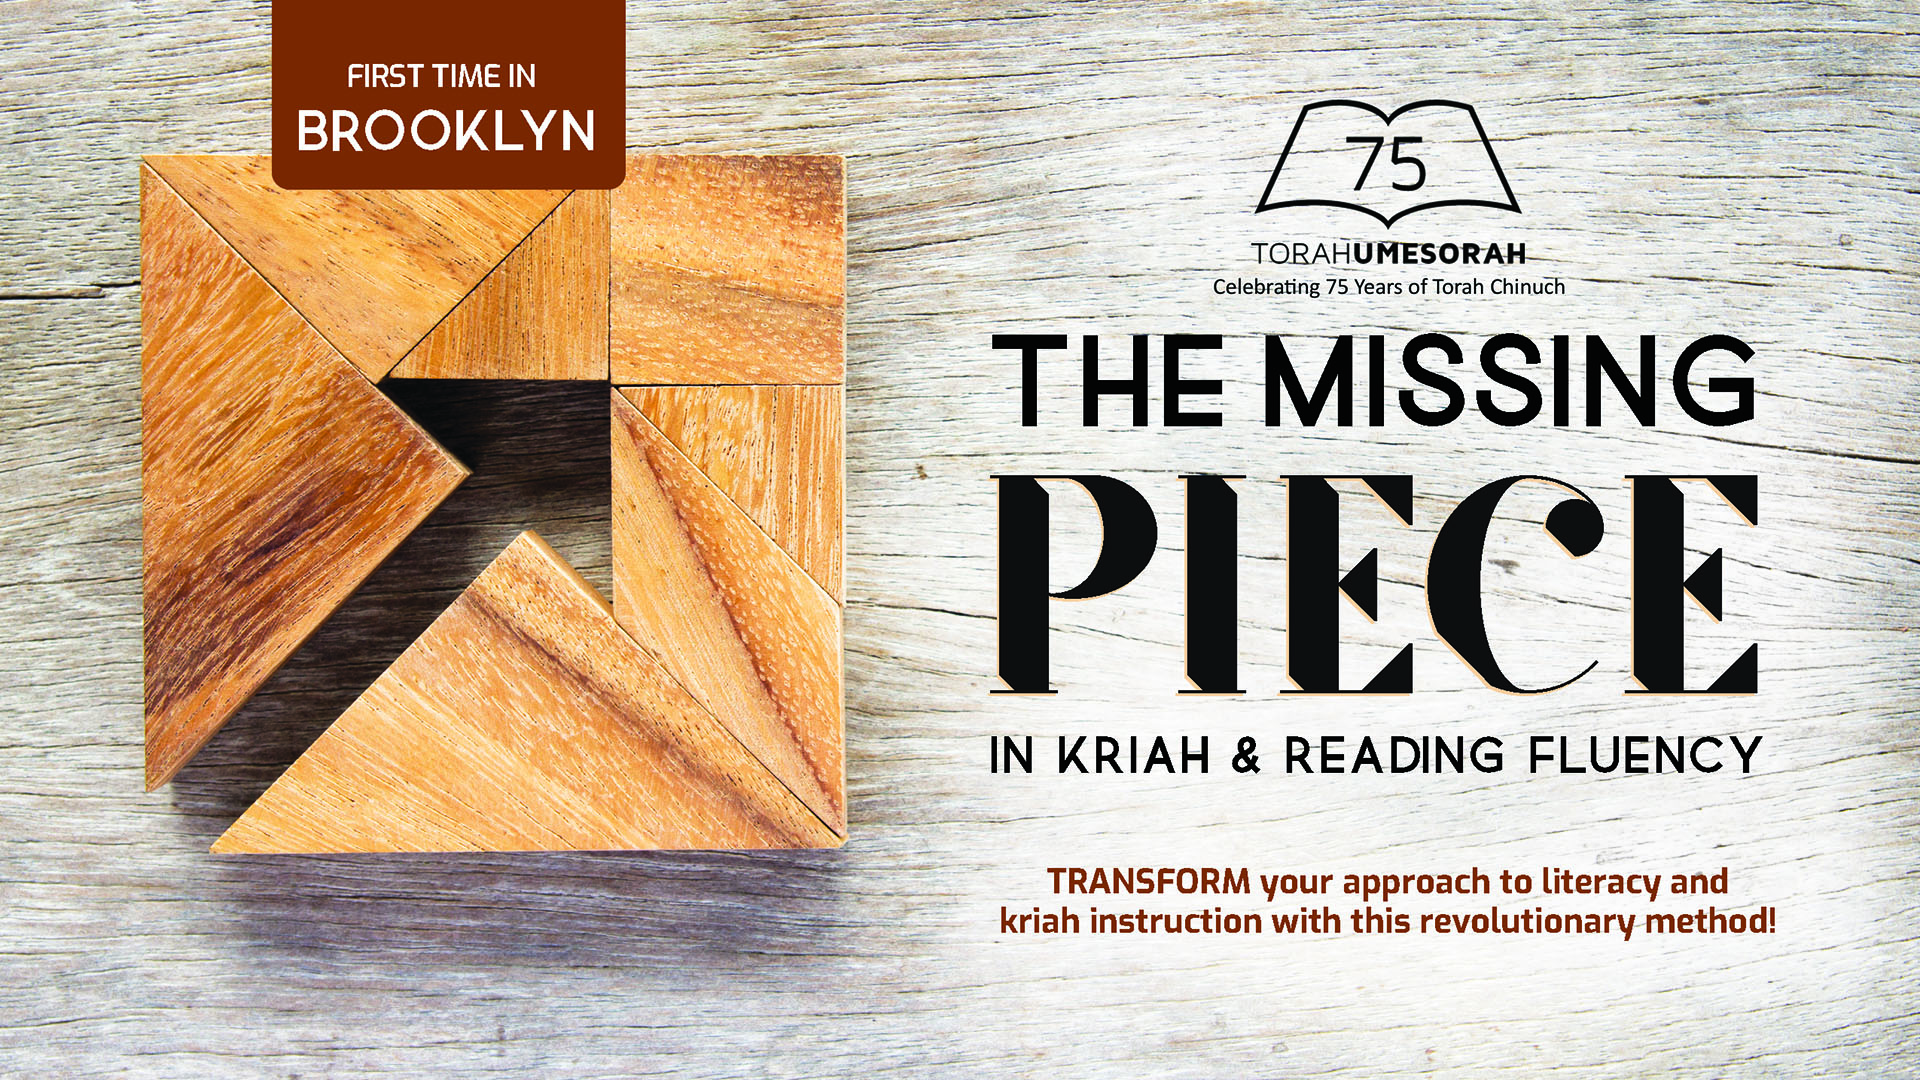 The Missing Piece in Kriah & Reading Fluency